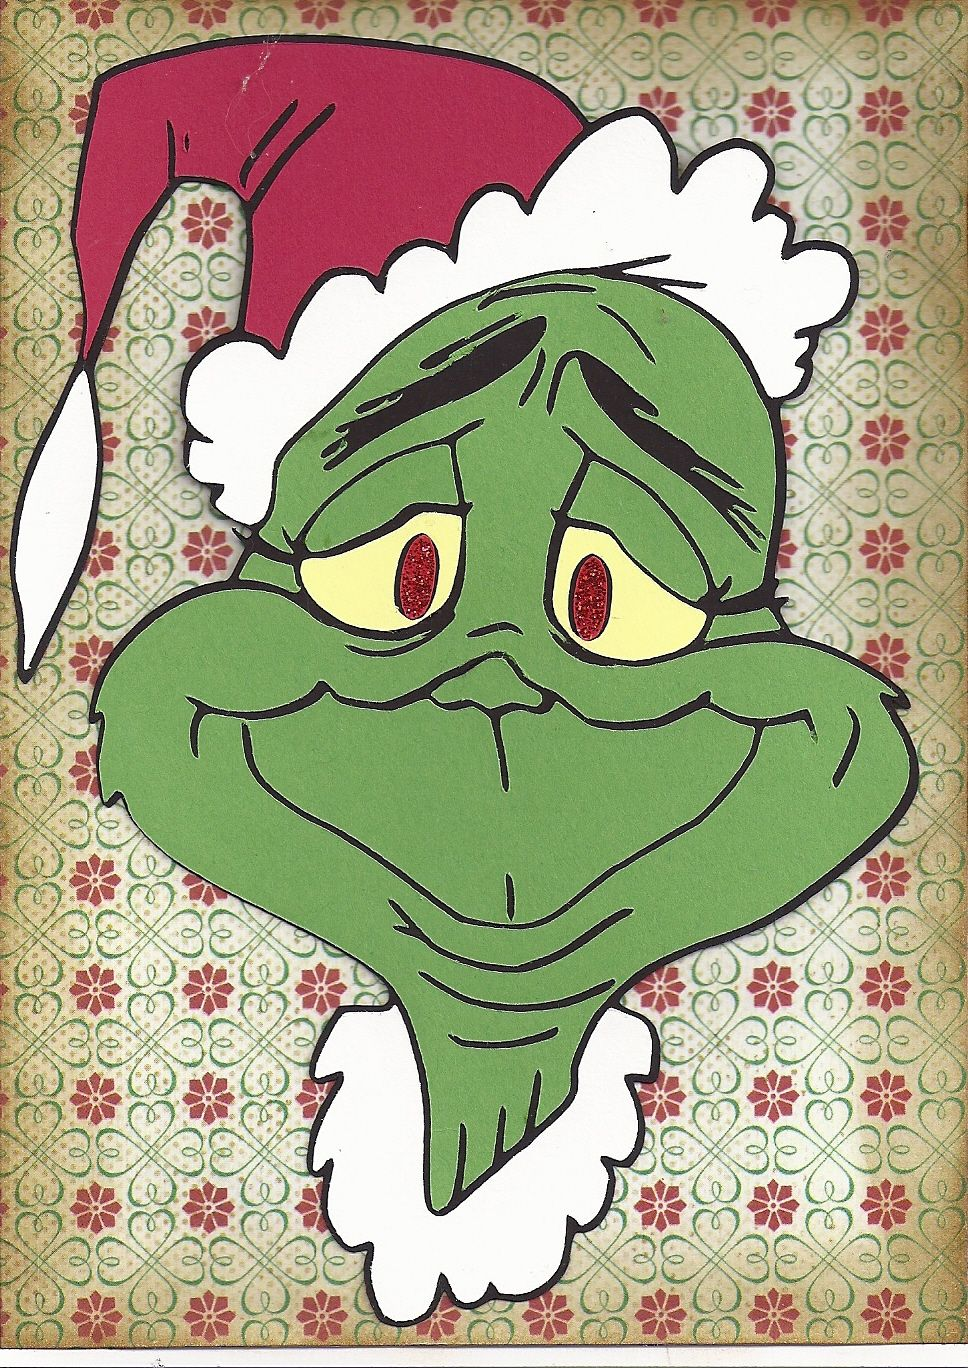 Grinch clipart broken ornament. The christmas card made